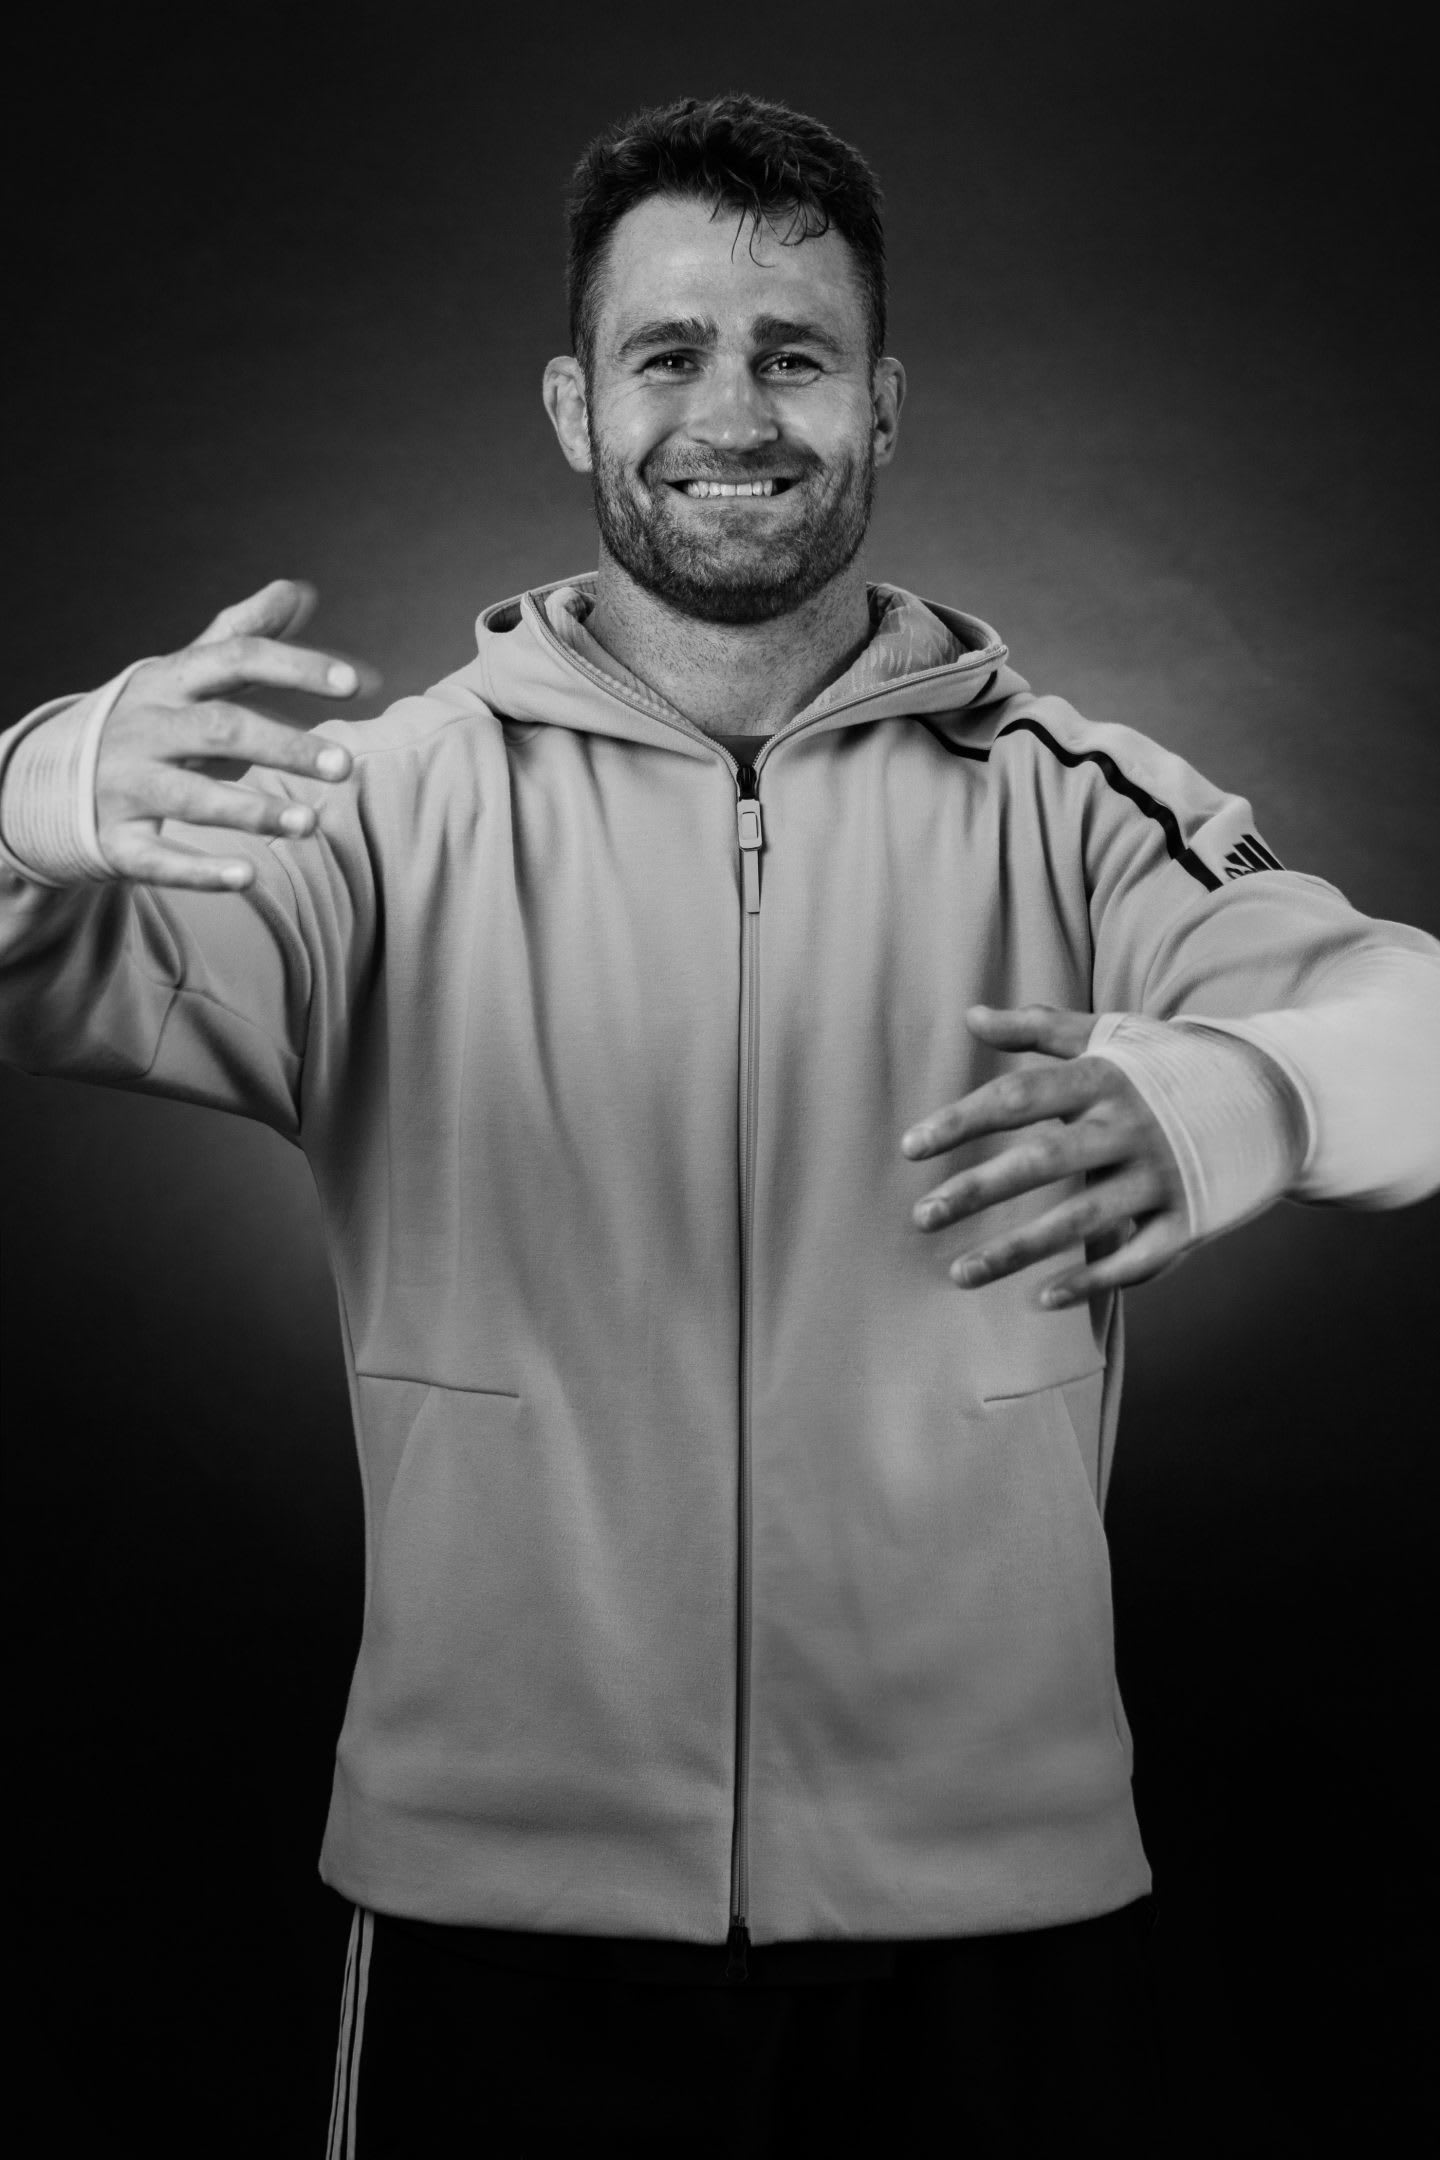 Black and white of rugby player James Horwill holding his arms in the position of a hug.